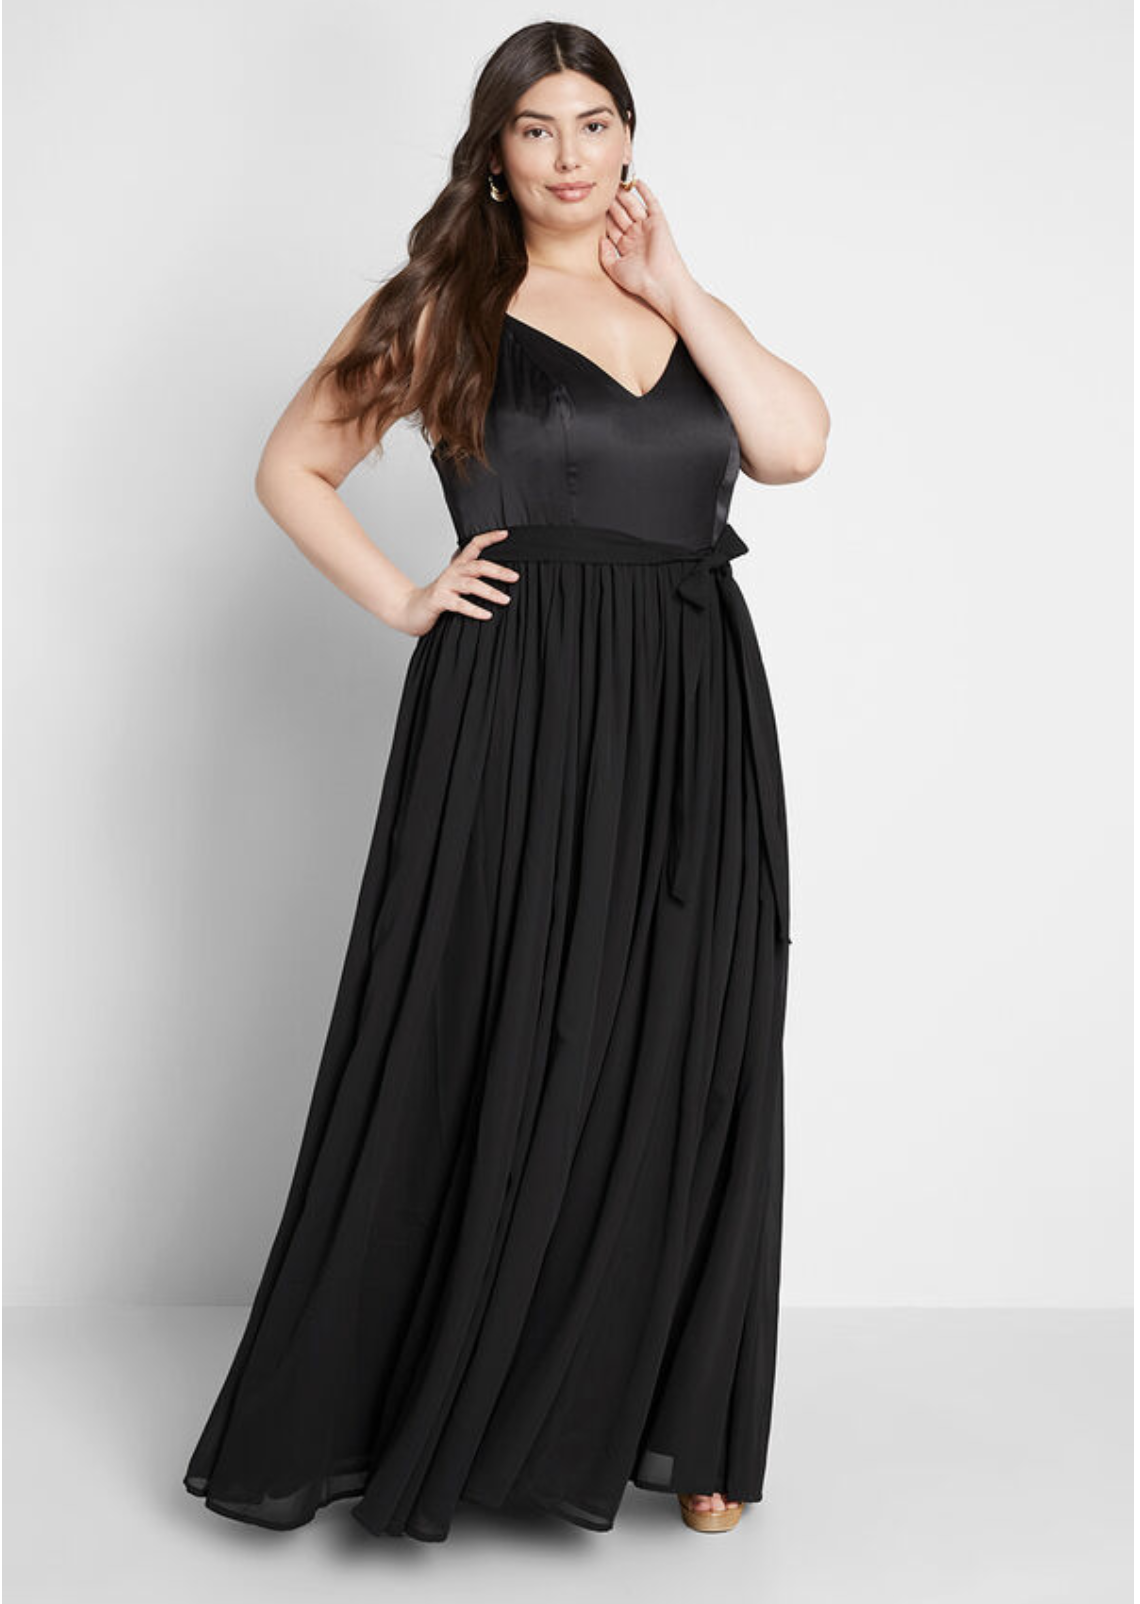 Model in black v-neck maxi dress with tulle skirt and belt that cinches at waist